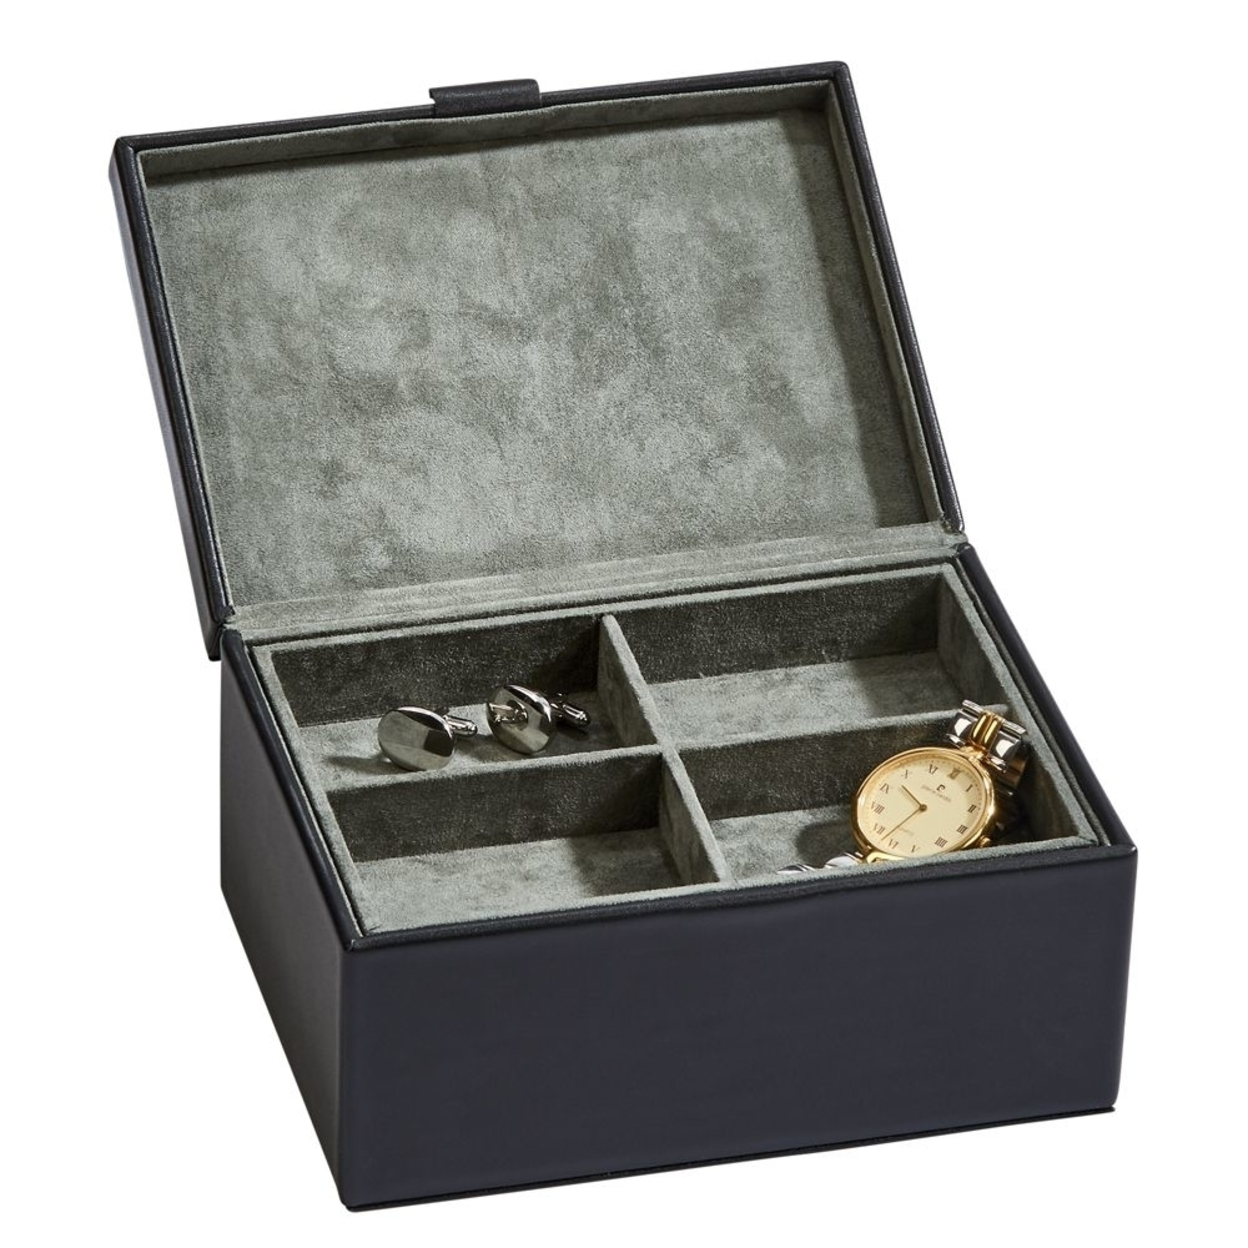 Personalized Top Grain Black Leather Box With 4 Section Lift Out Tray. With Gift Box